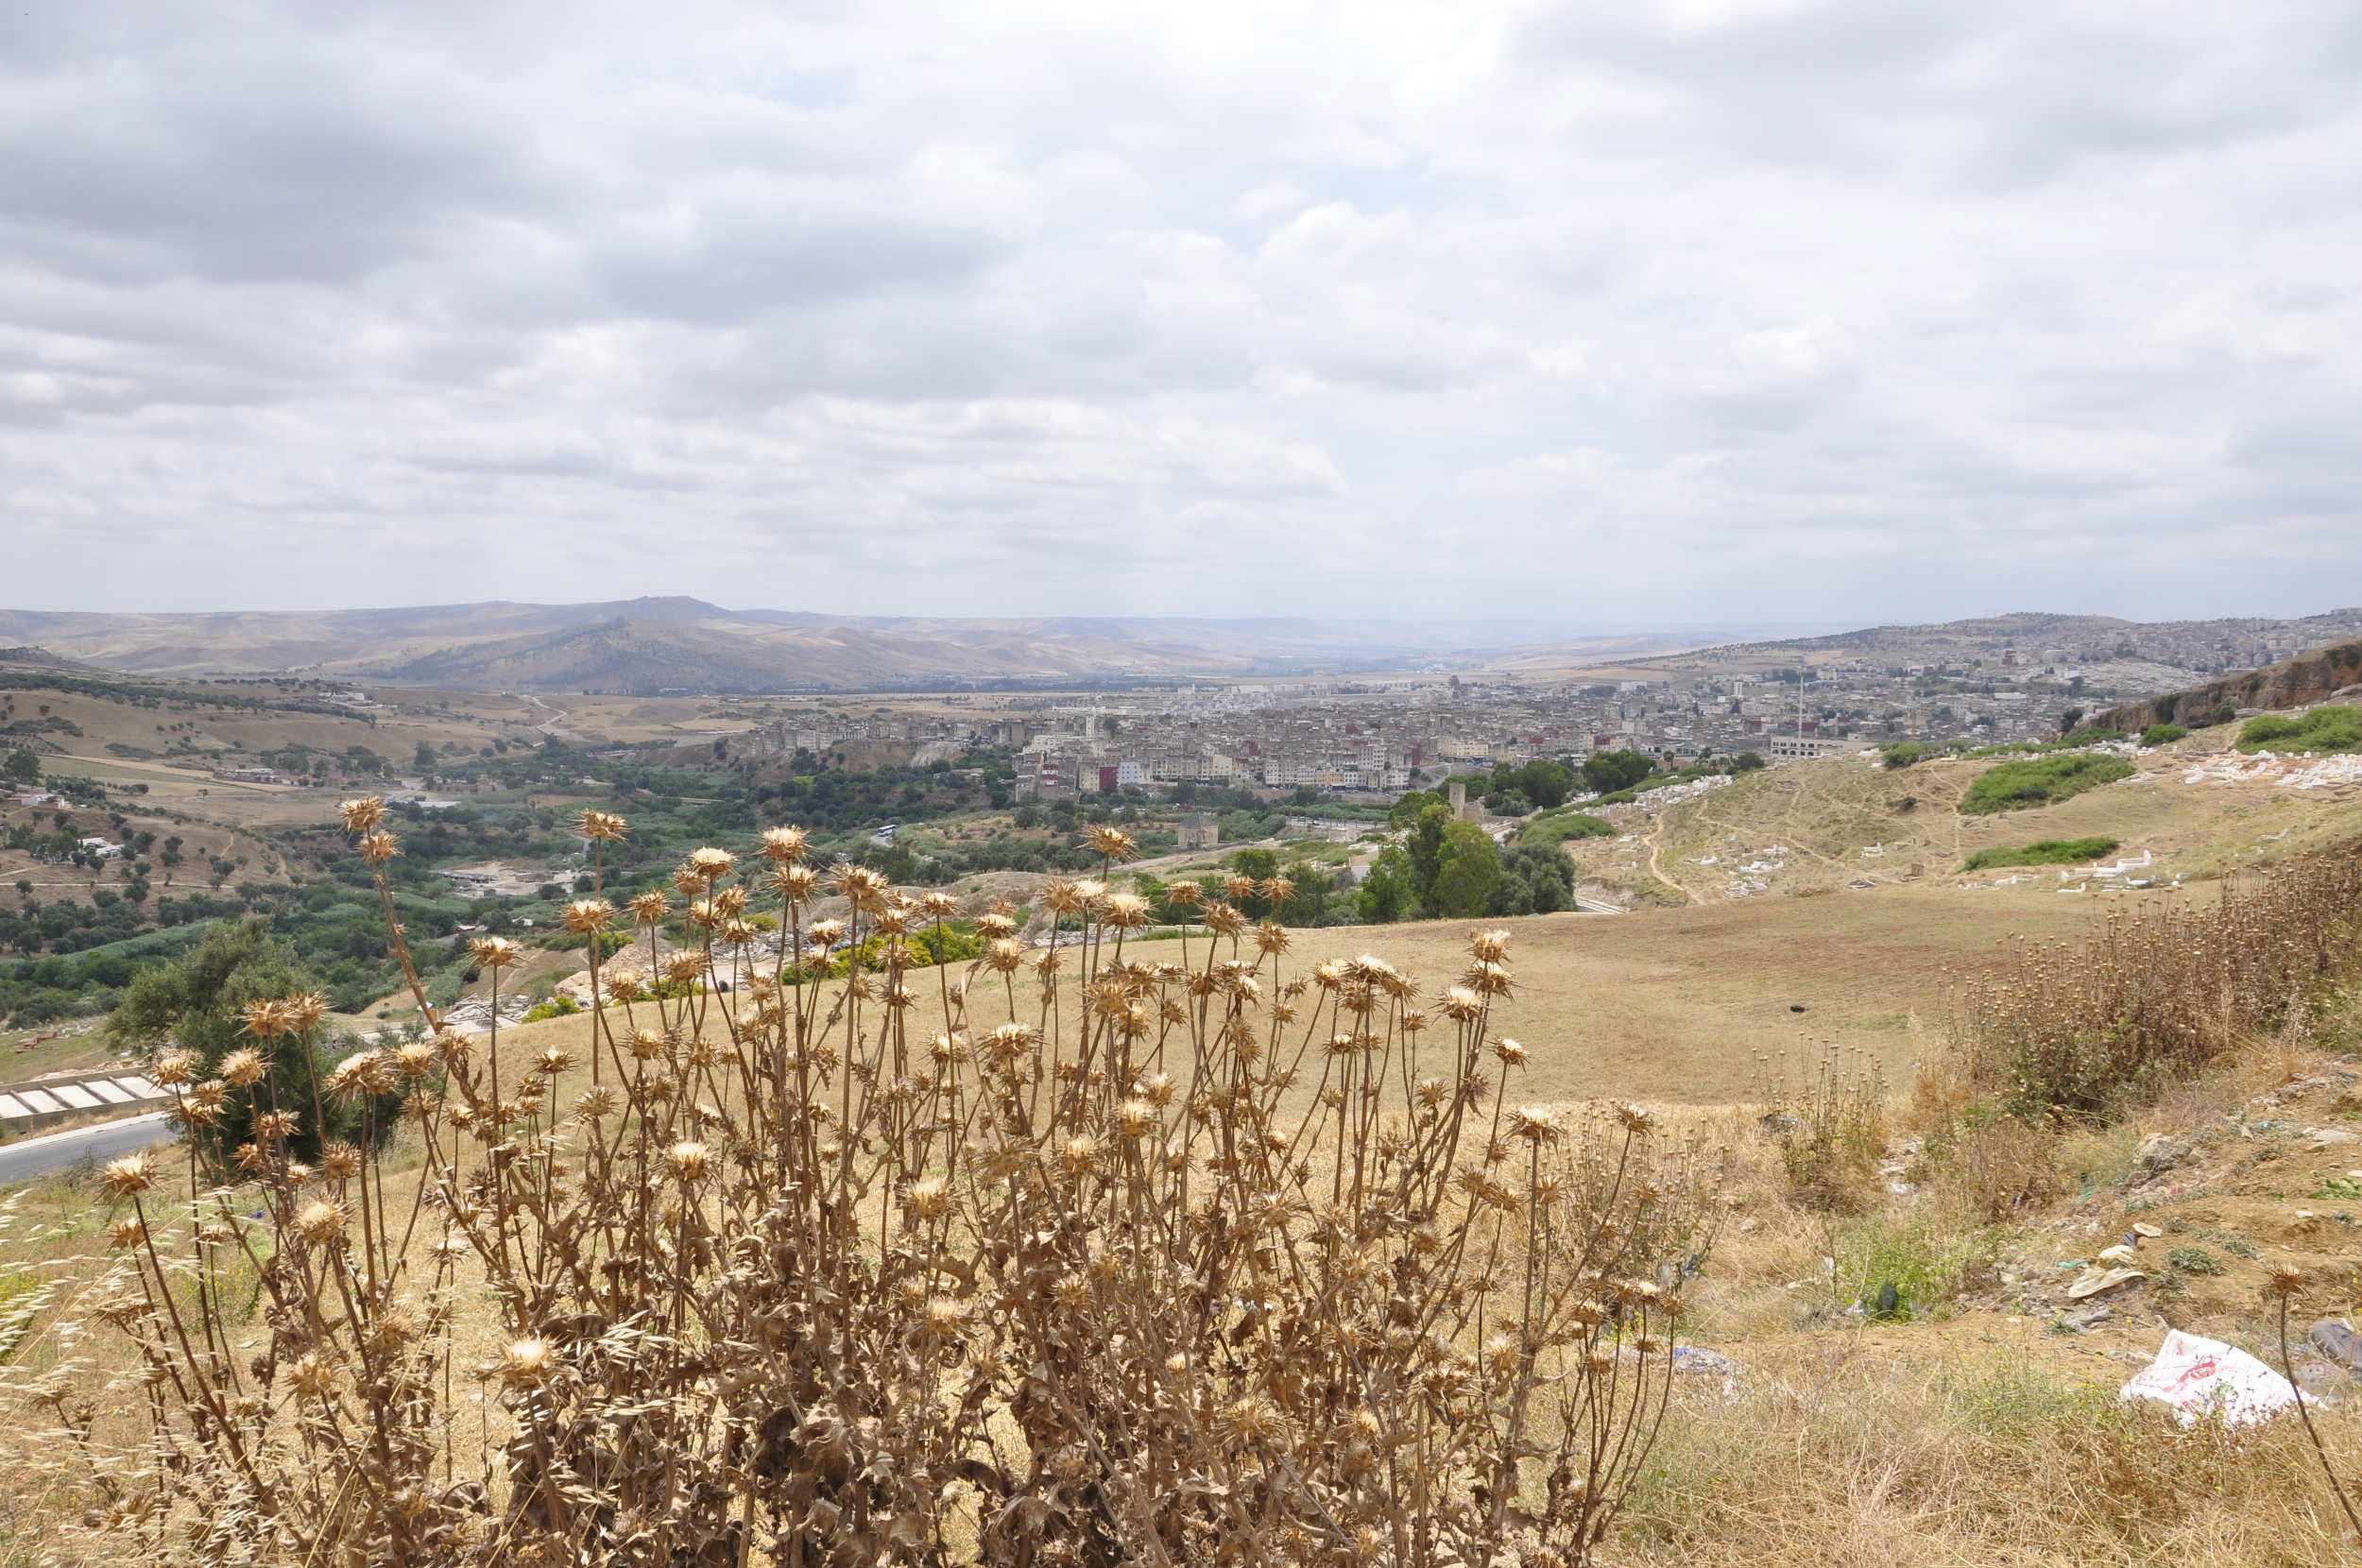 Stunning views from the mount Zalagh